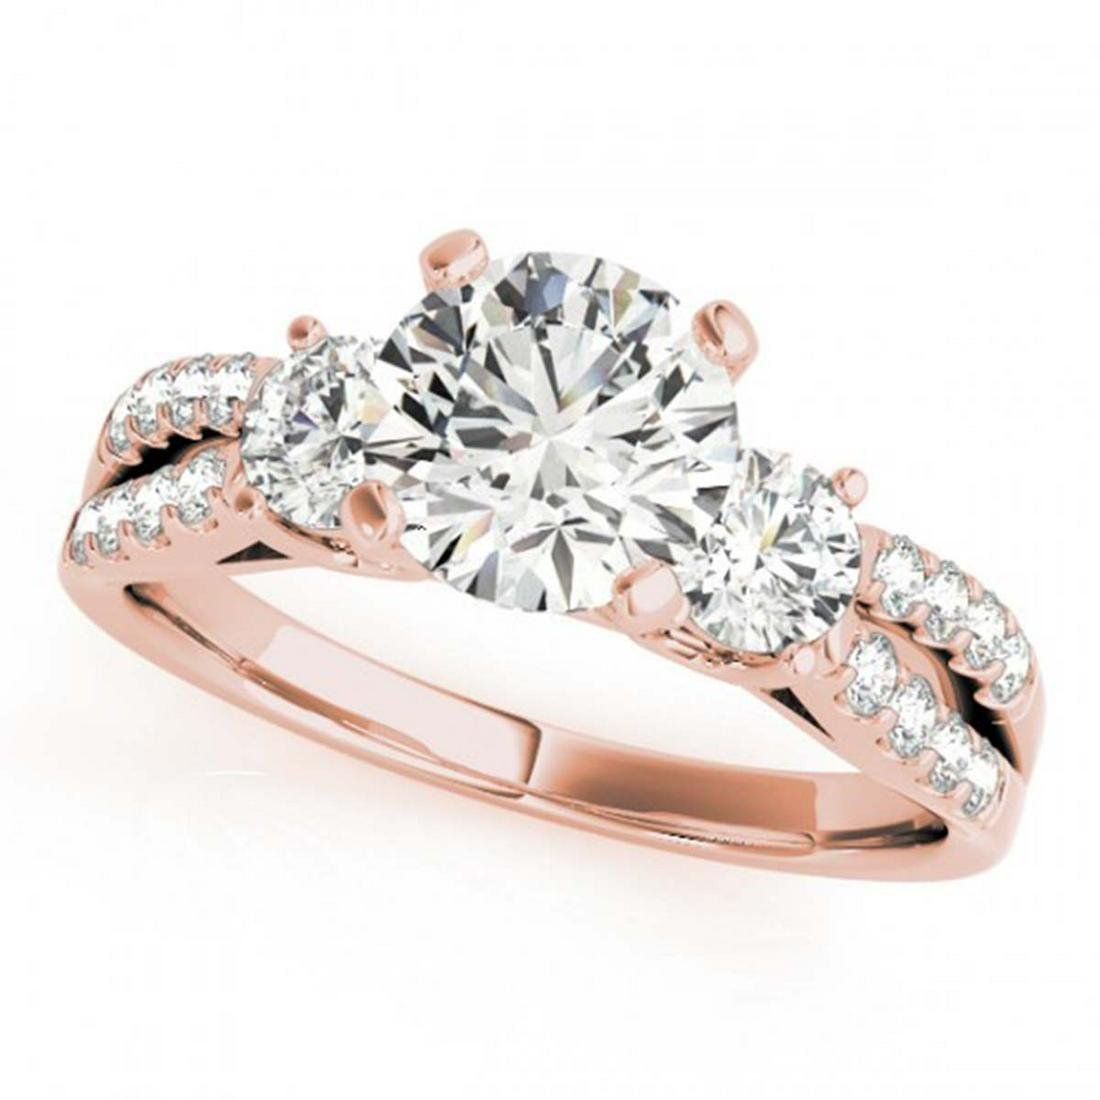 1.25 ctw VS/SI Diamond 3 Stone Ring 14K Rose Gold -